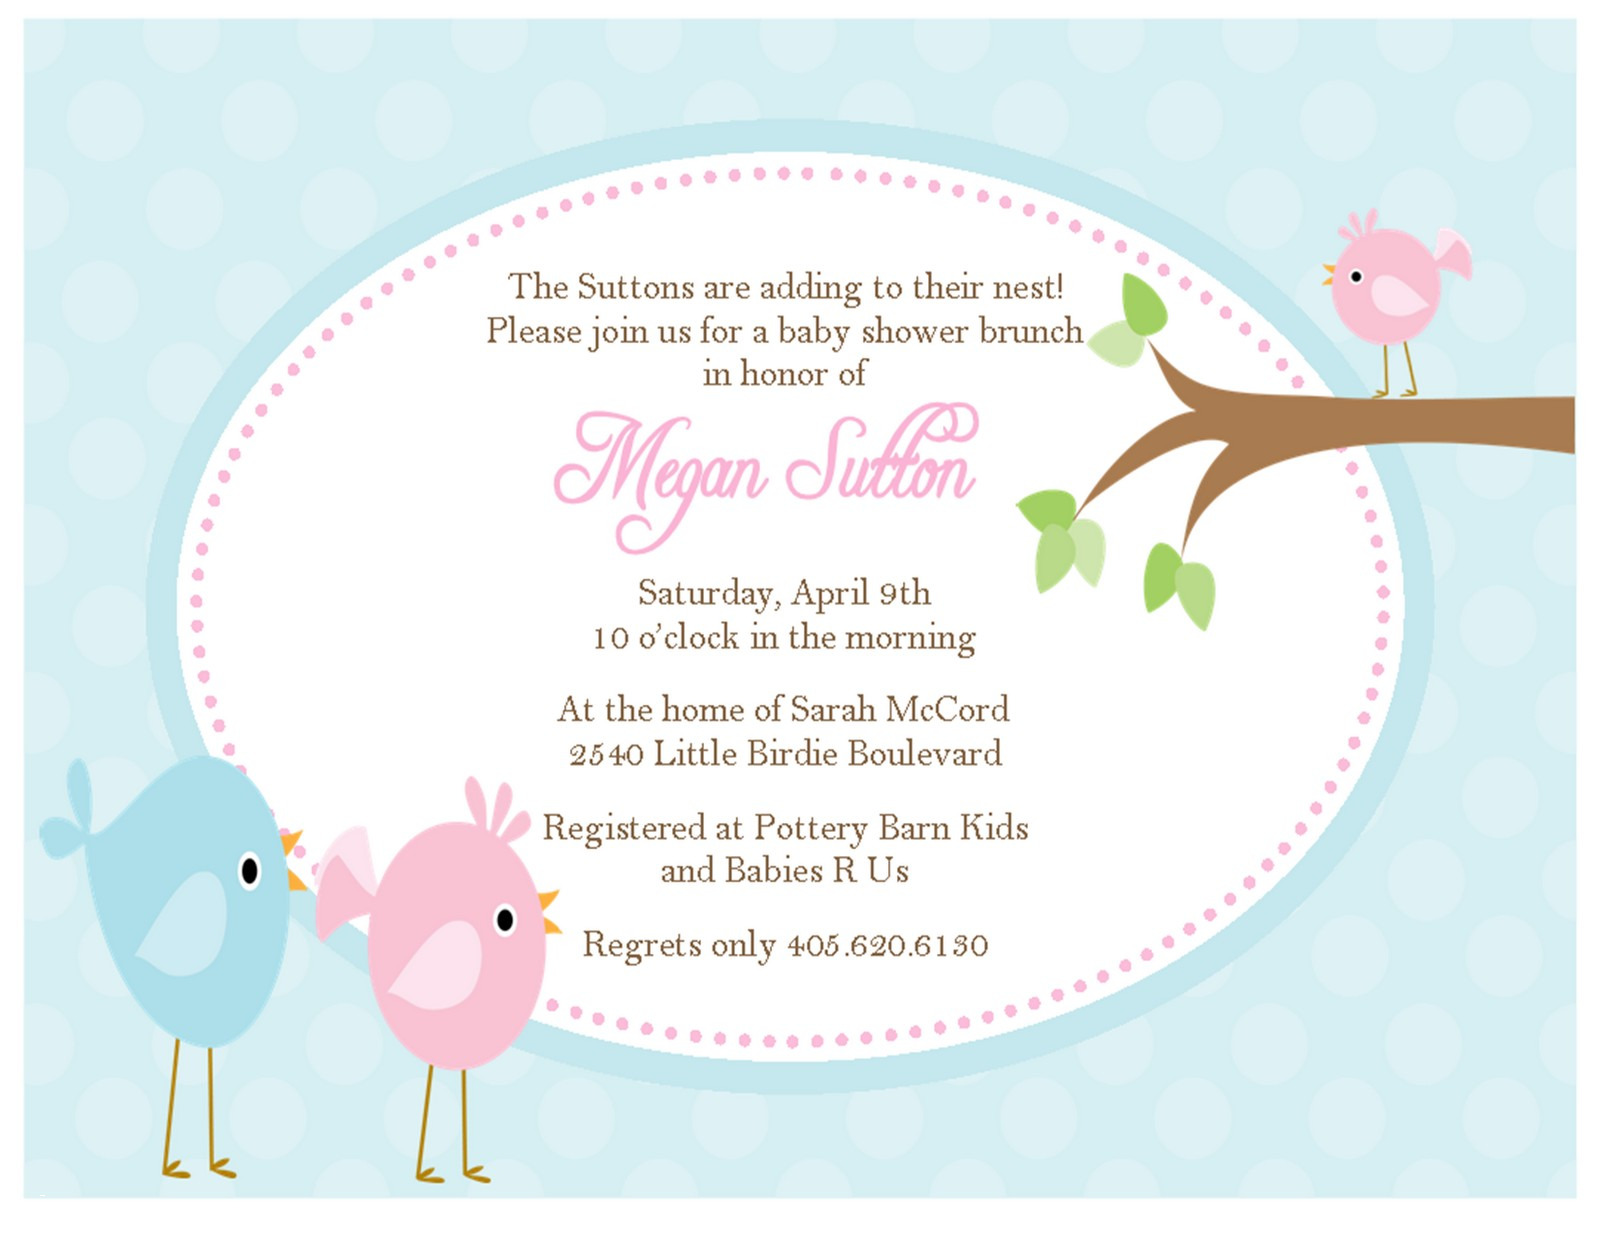 Full Size of Baby Shower:delightful Baby Shower Invitation Wording Picture Designs Baby Shower Invitation Wording Fun Baby Shower Games Baby Shower Photos Best Baby Shower Gifts 2018 Books For Baby Shower Baby Shower De Niño Baby Shower Sayings Baby Shower Wording For Cards Luxury Lovely Baby Shower Invitations Wording Ndash Laceandbuckles